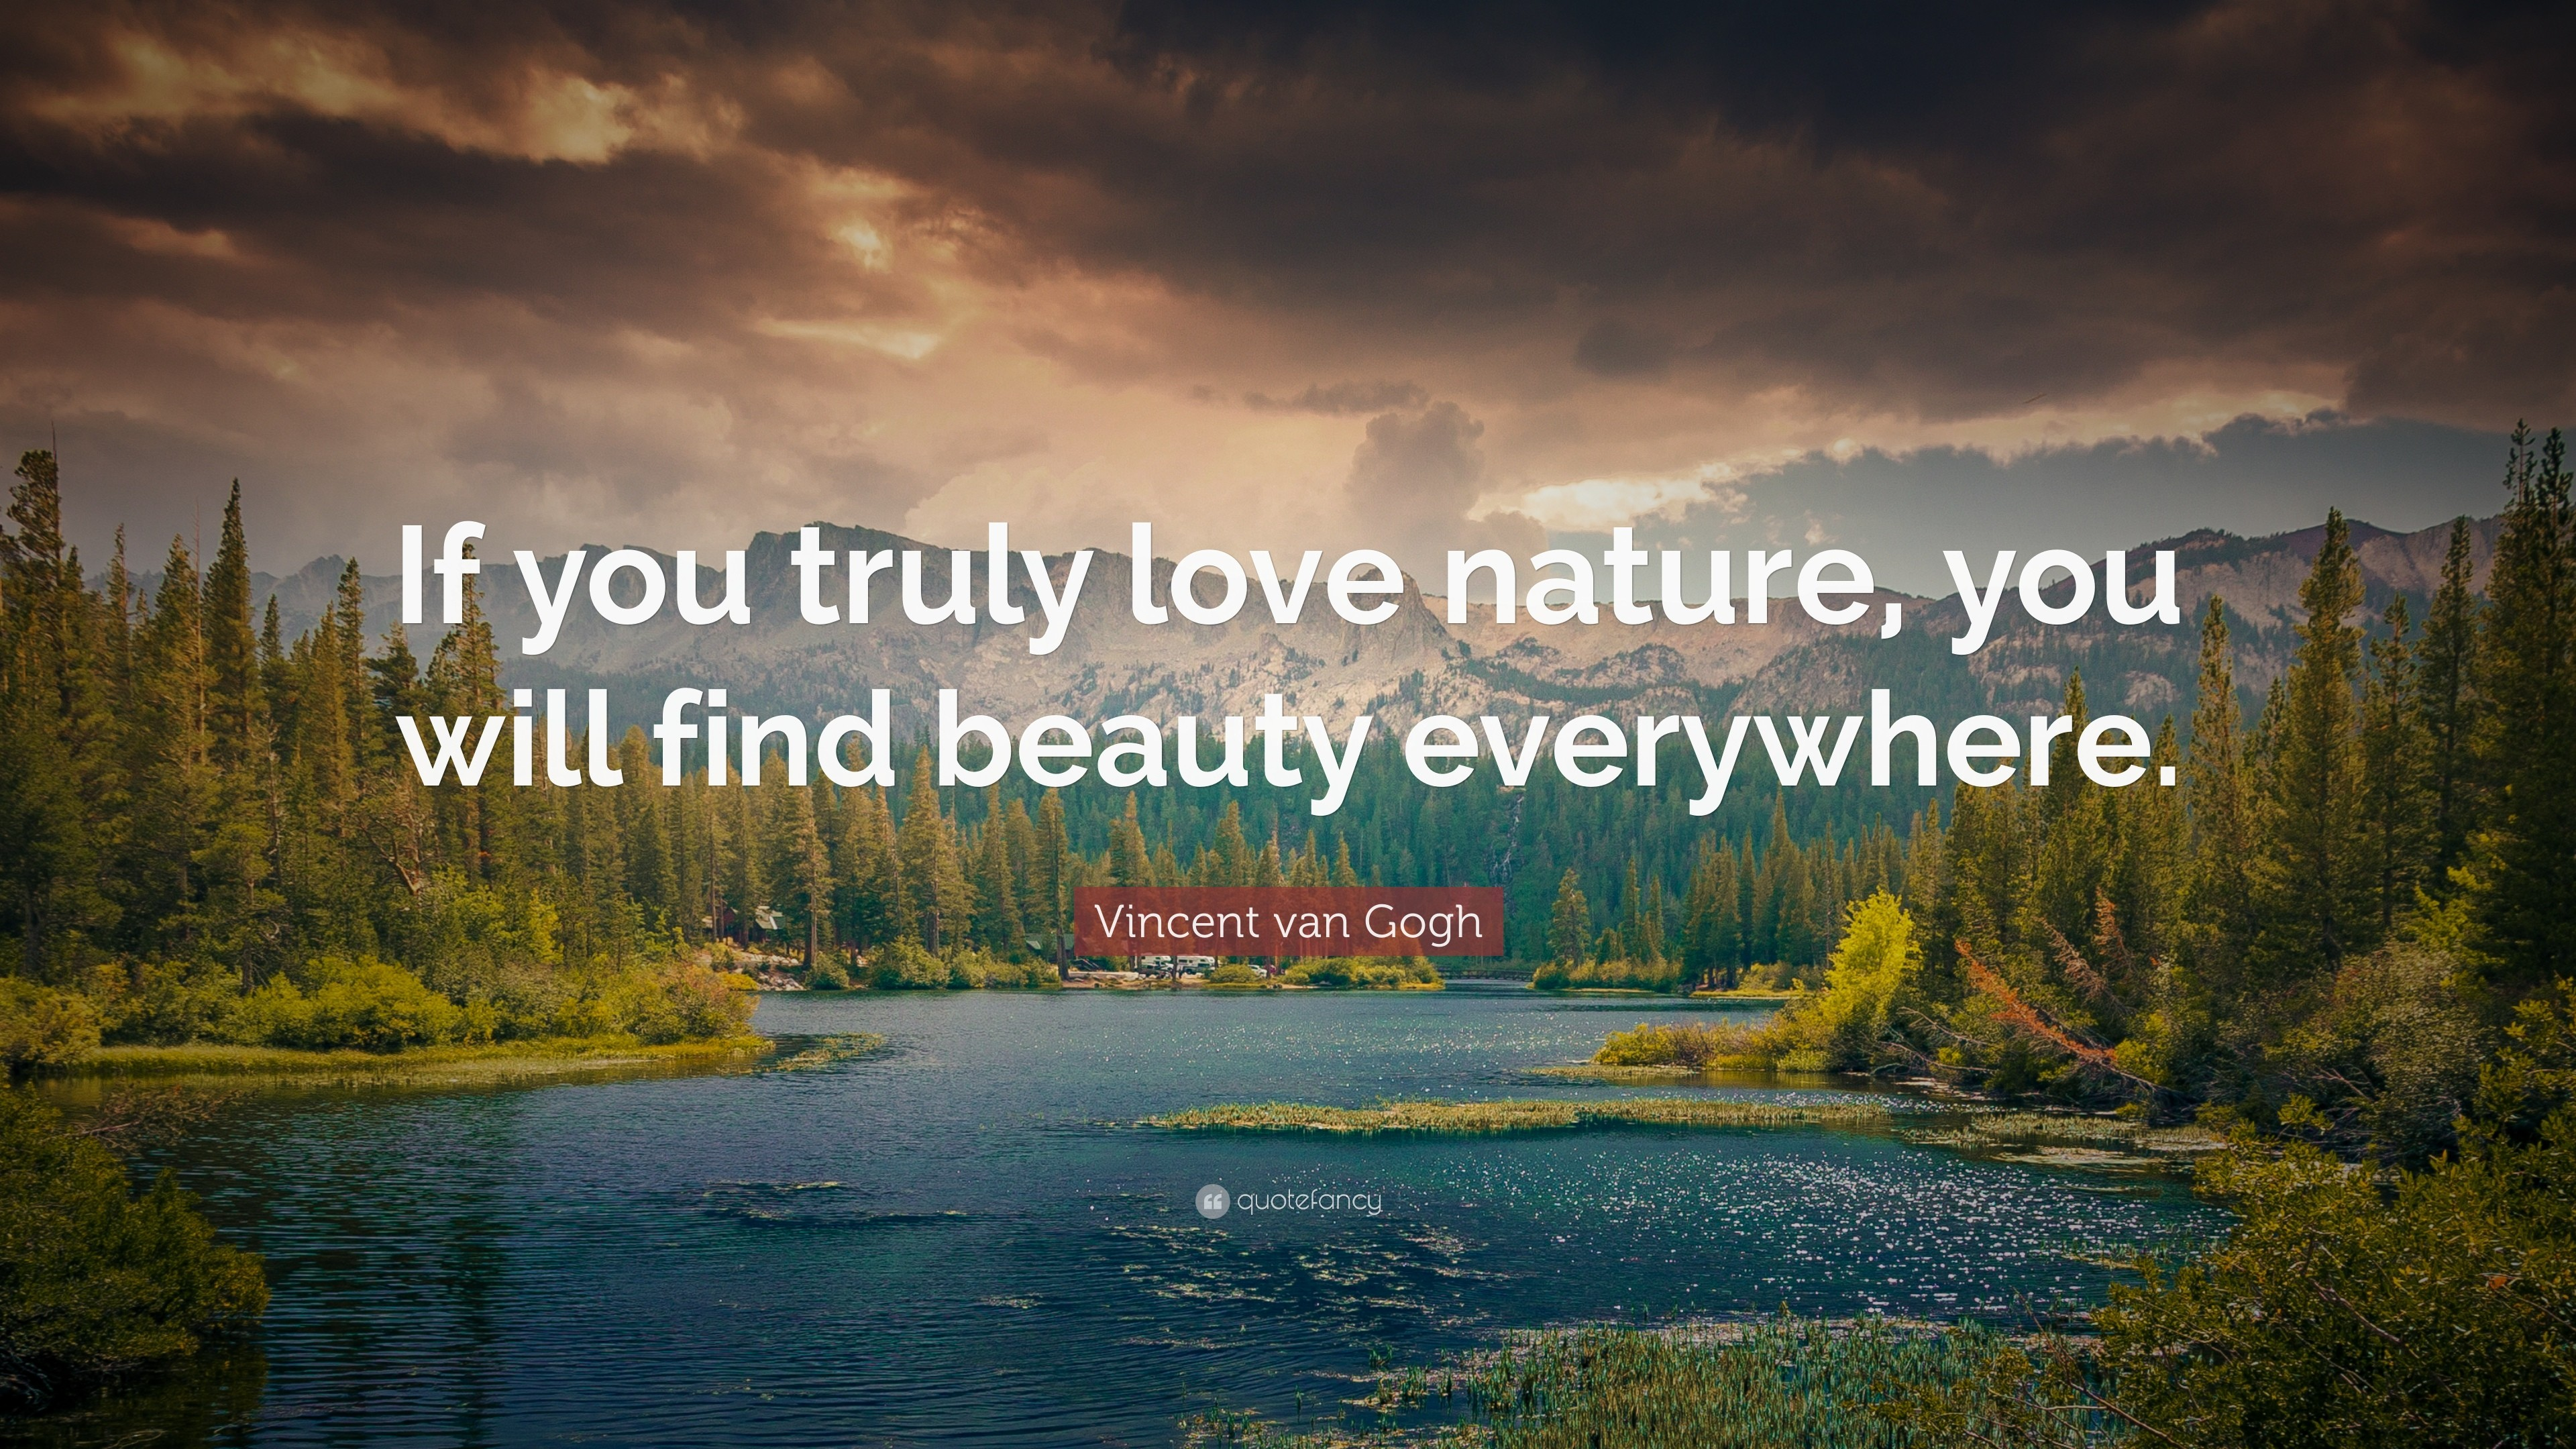 """Res: 3840x2160, Nature Quotes: """"If you truly love nature, you will find beauty everywhere."""